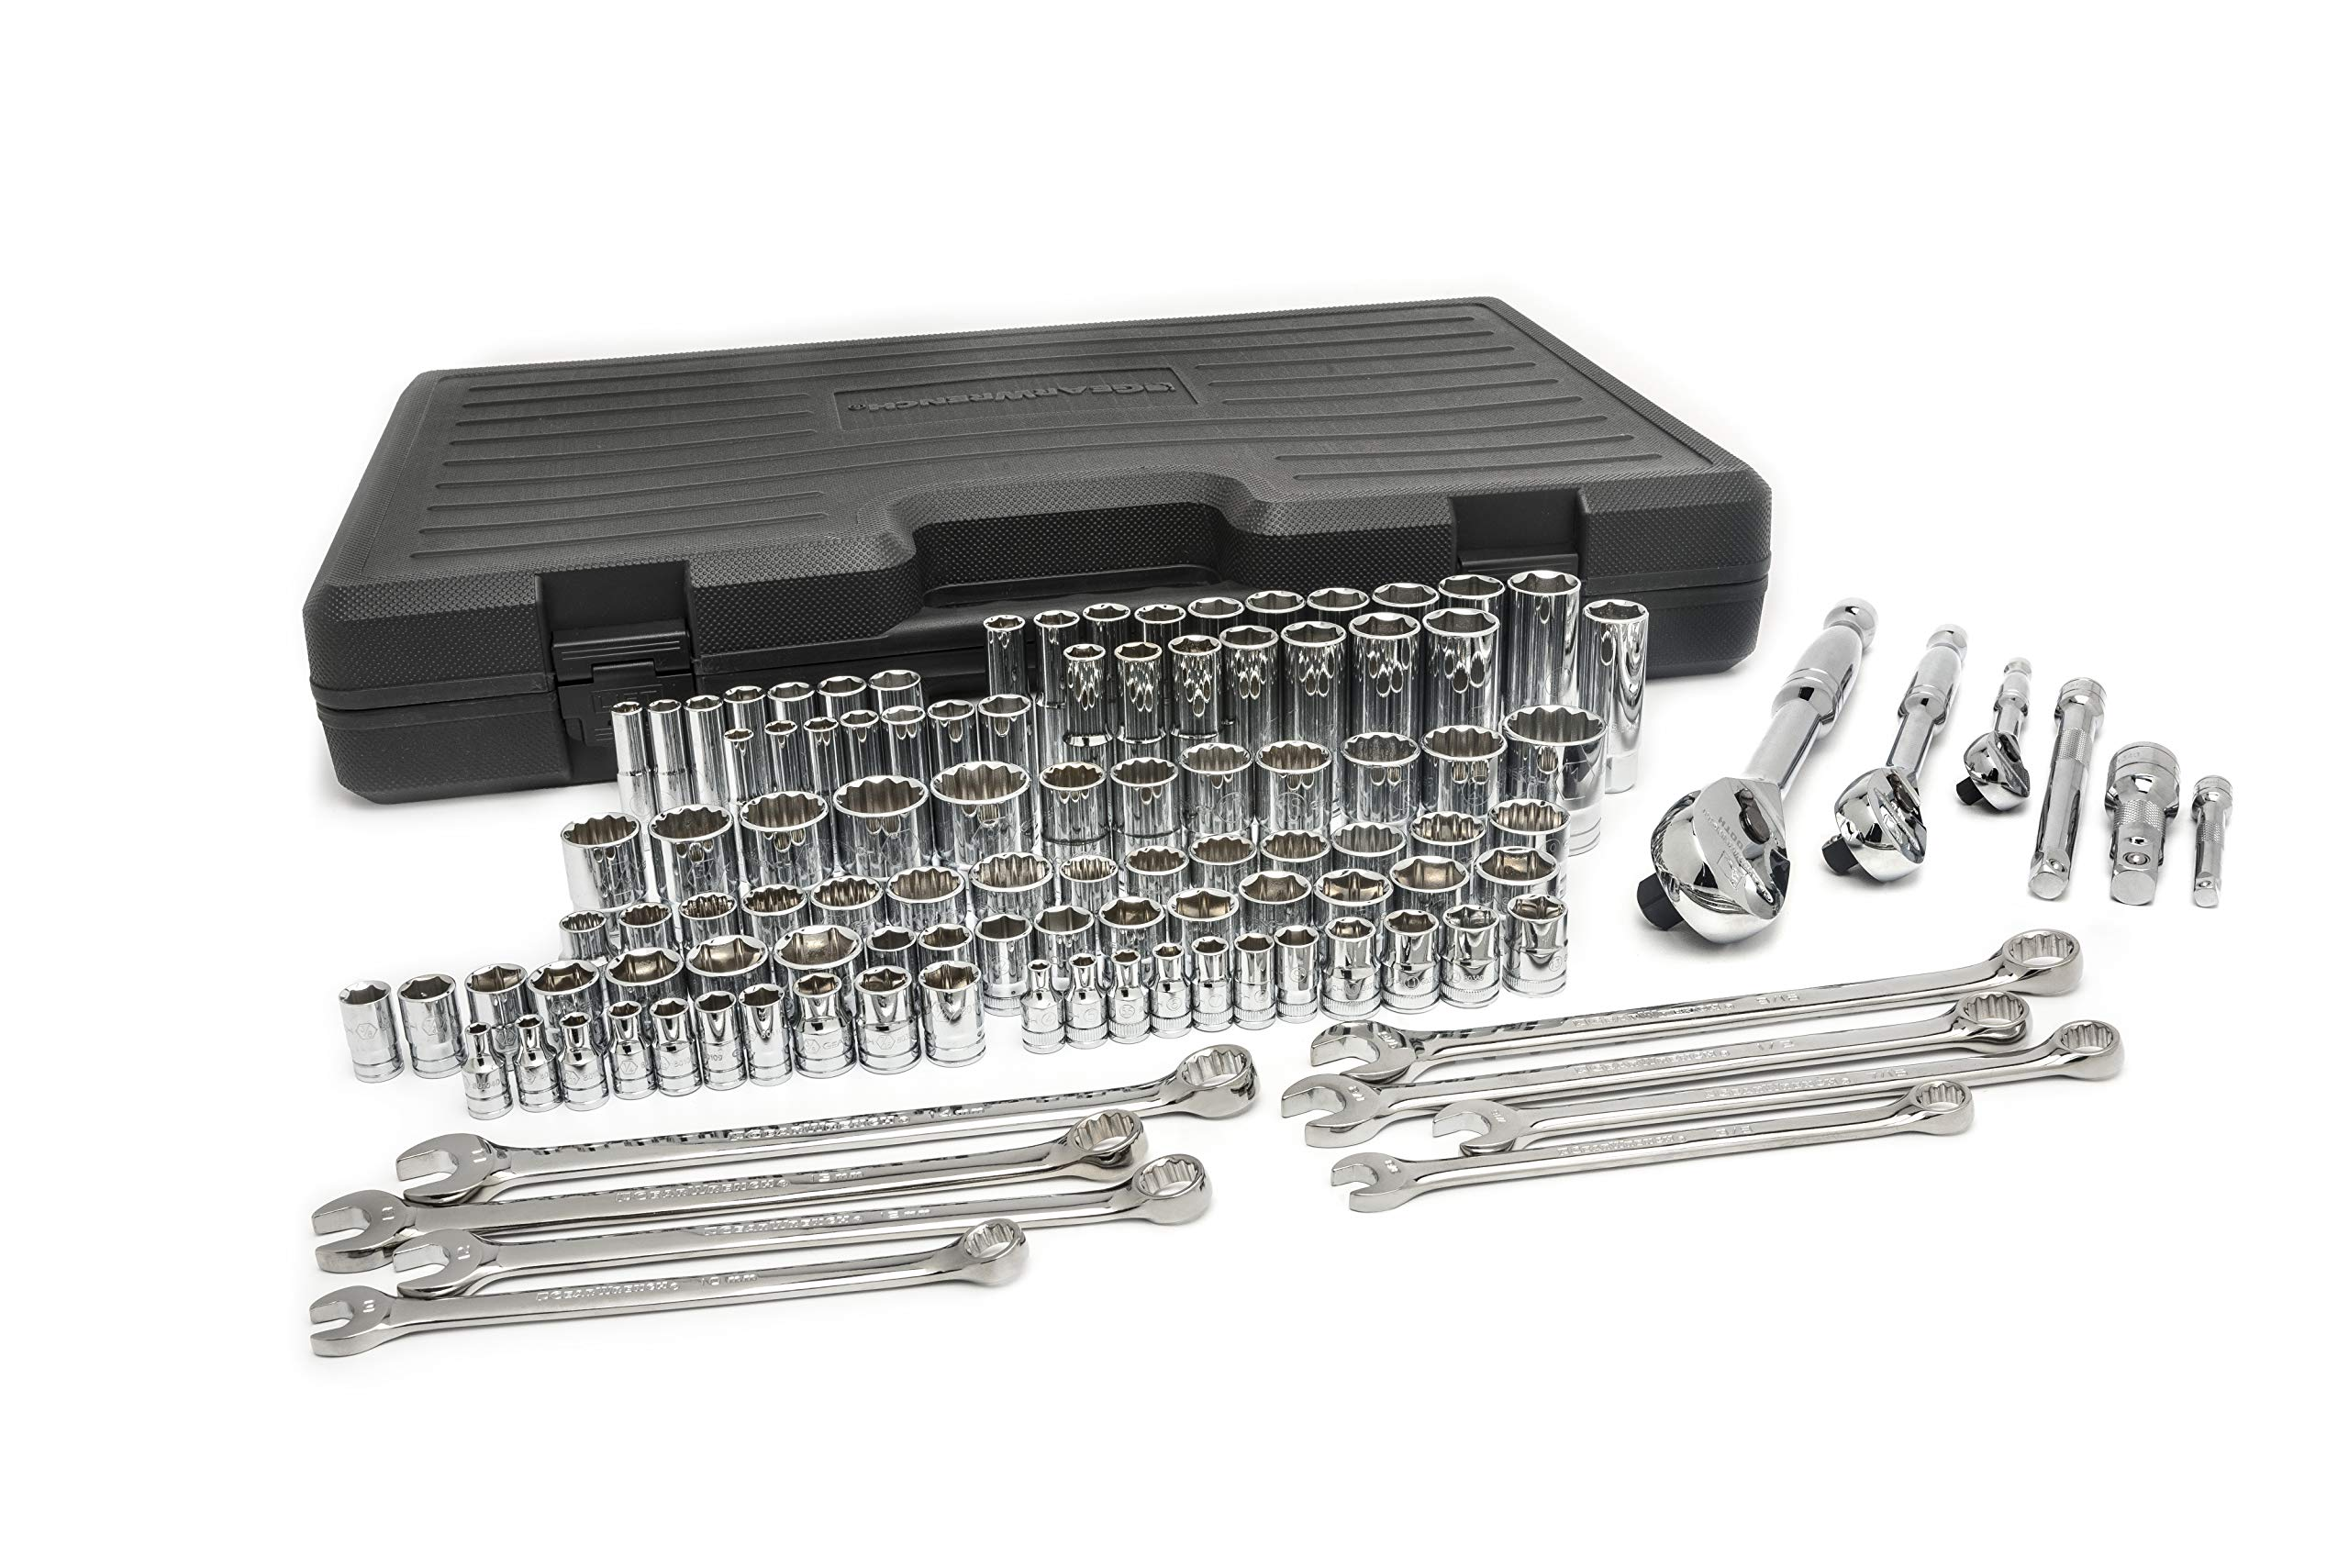 GEARWRENCH 89058 Mechanics Tool Set SAE/MM (110-Pieces)